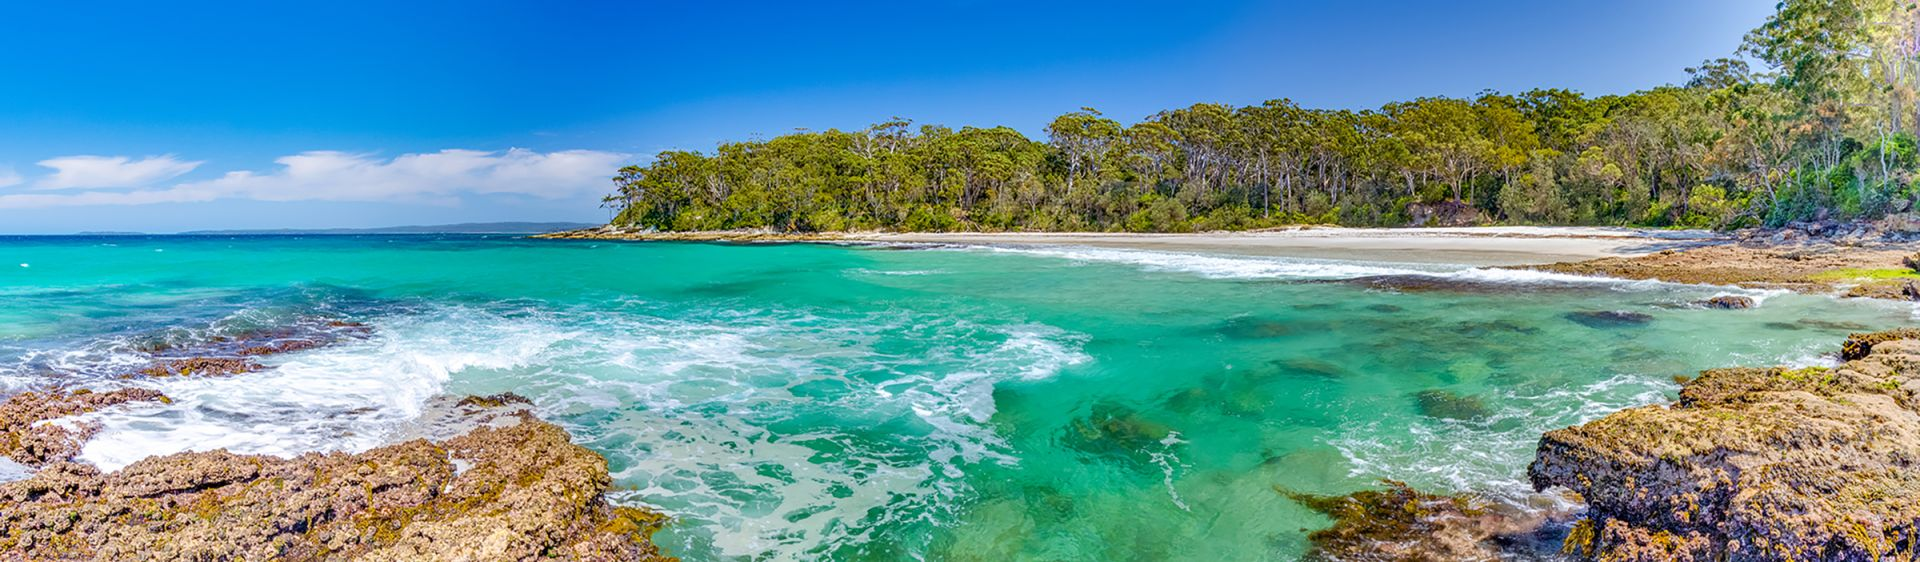 Vincentia NSW - Plan a Holiday - Accommodation, Things to Do & Beach